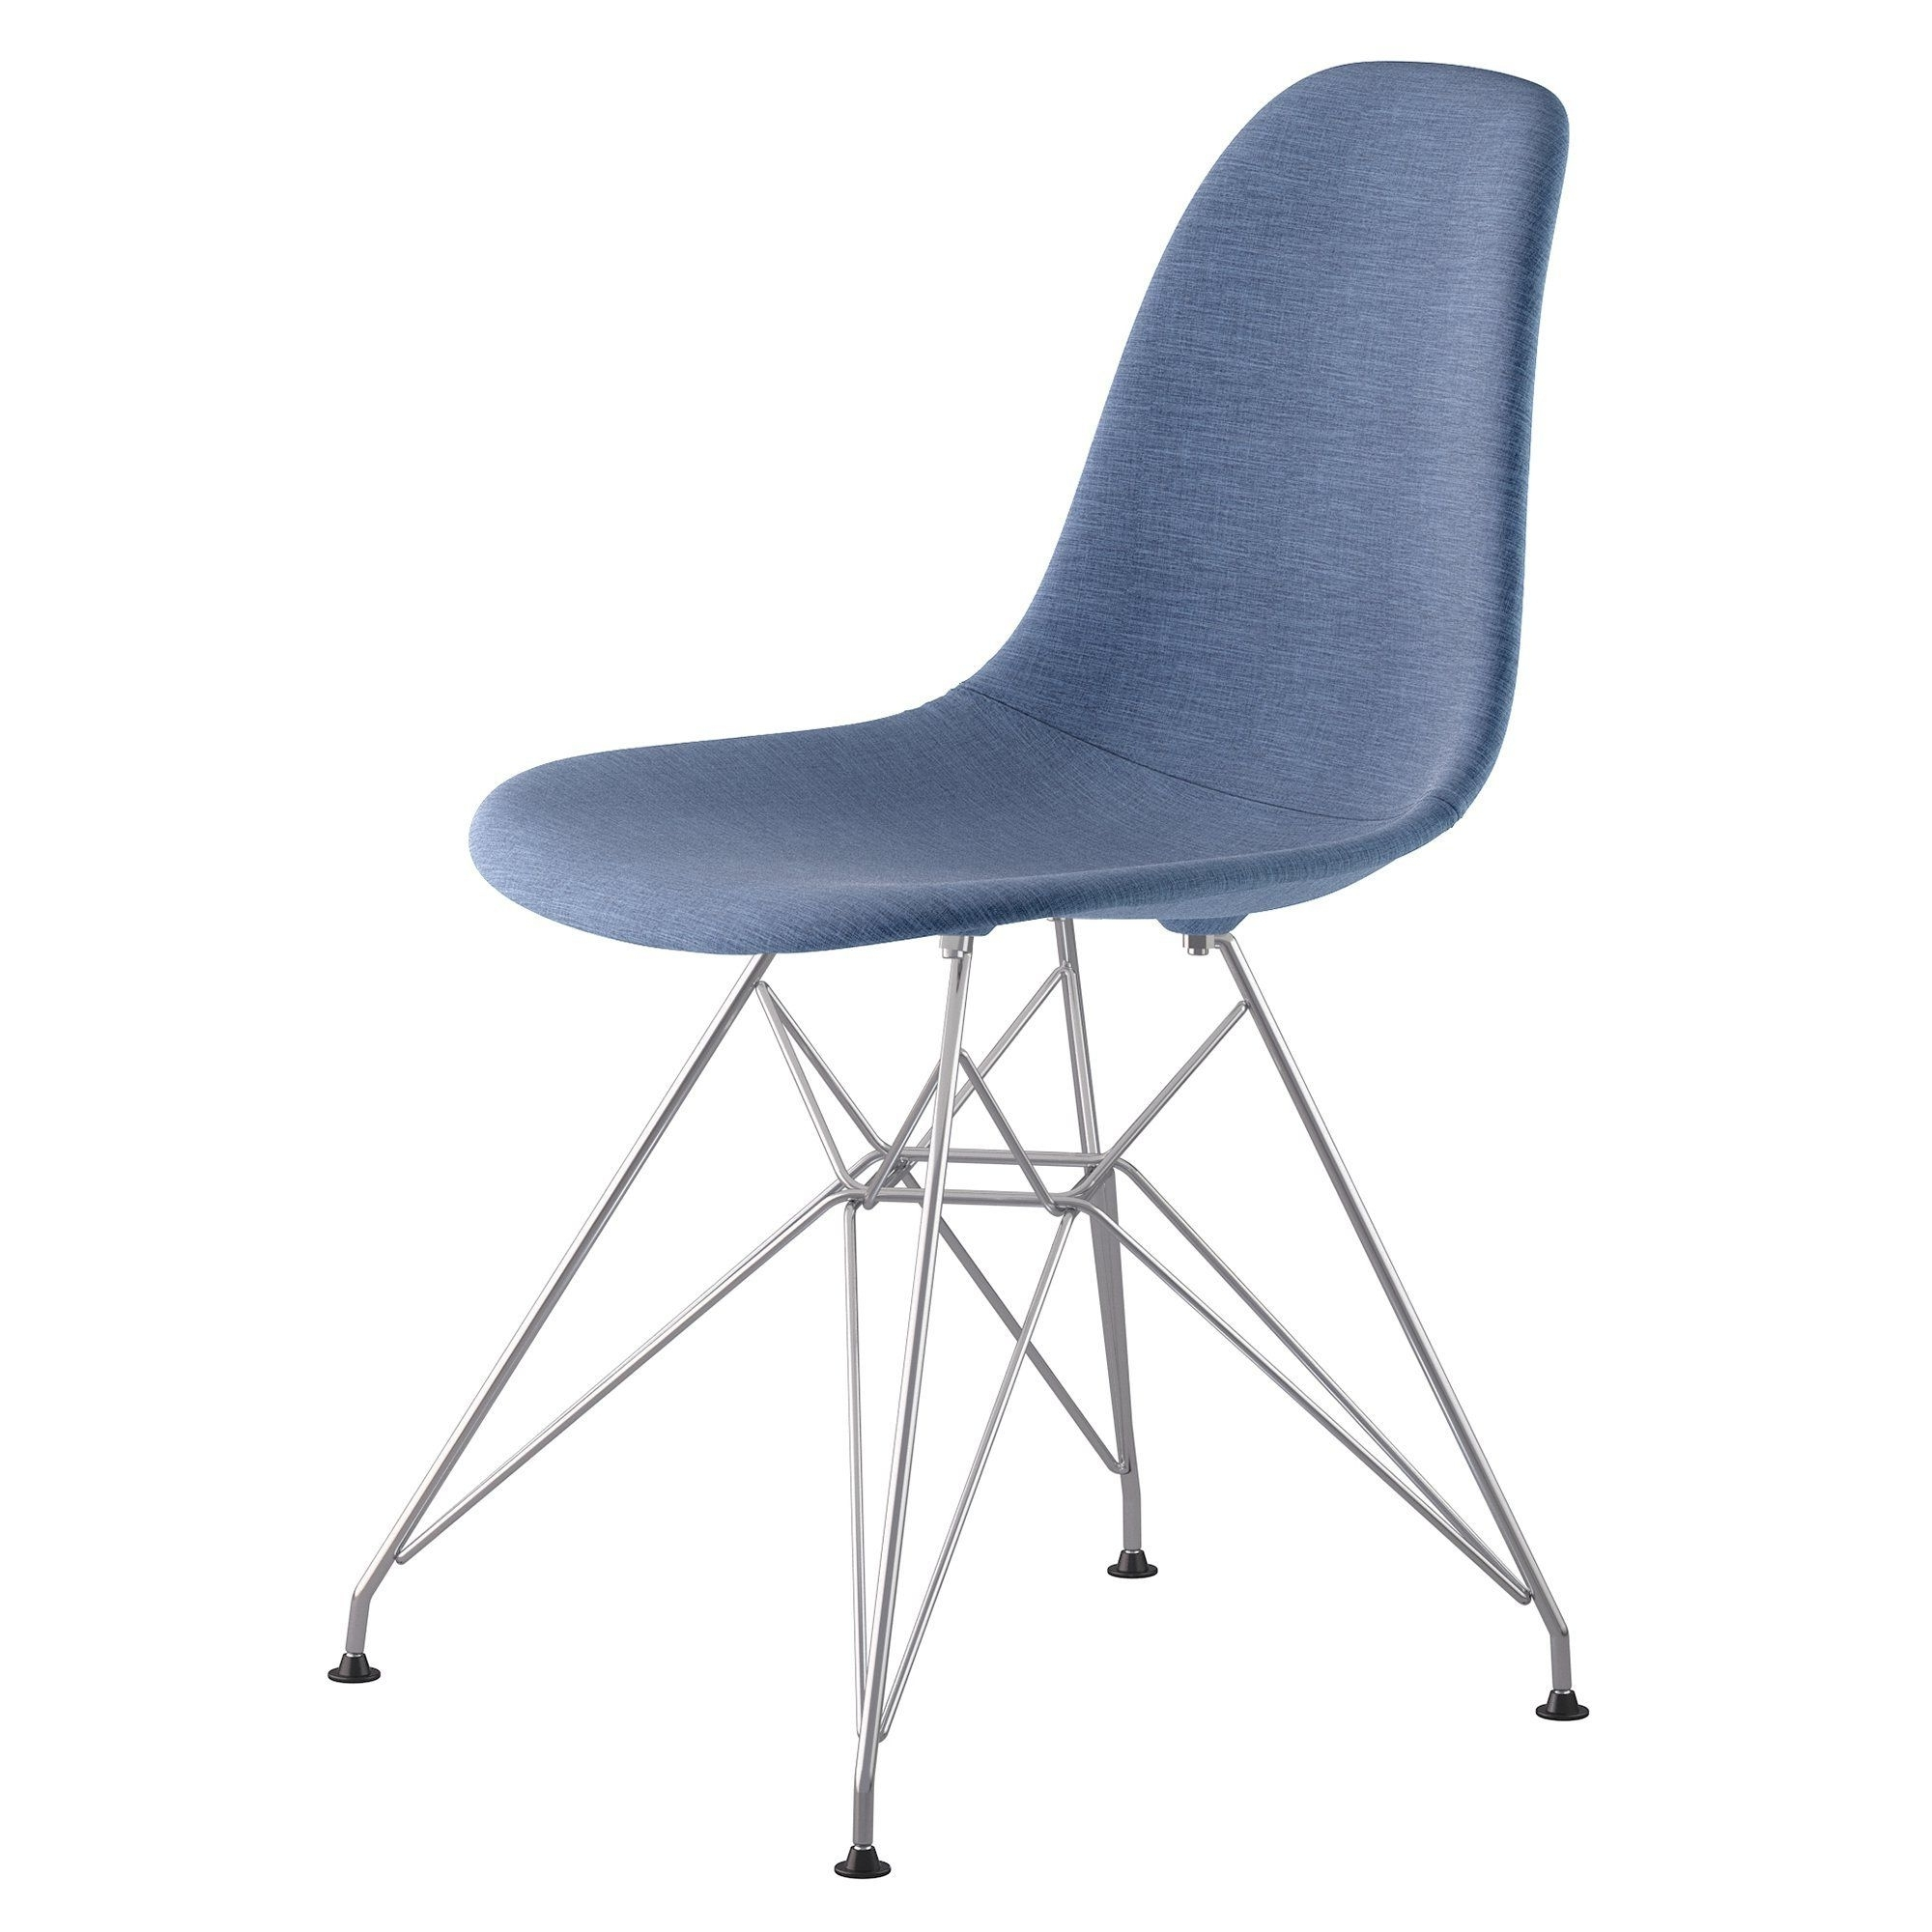 Preferred Mid Century Eiffel Side Chair In Dodger Blue Fabric With Brushed Within Dodger Side Chairs (View 14 of 20)